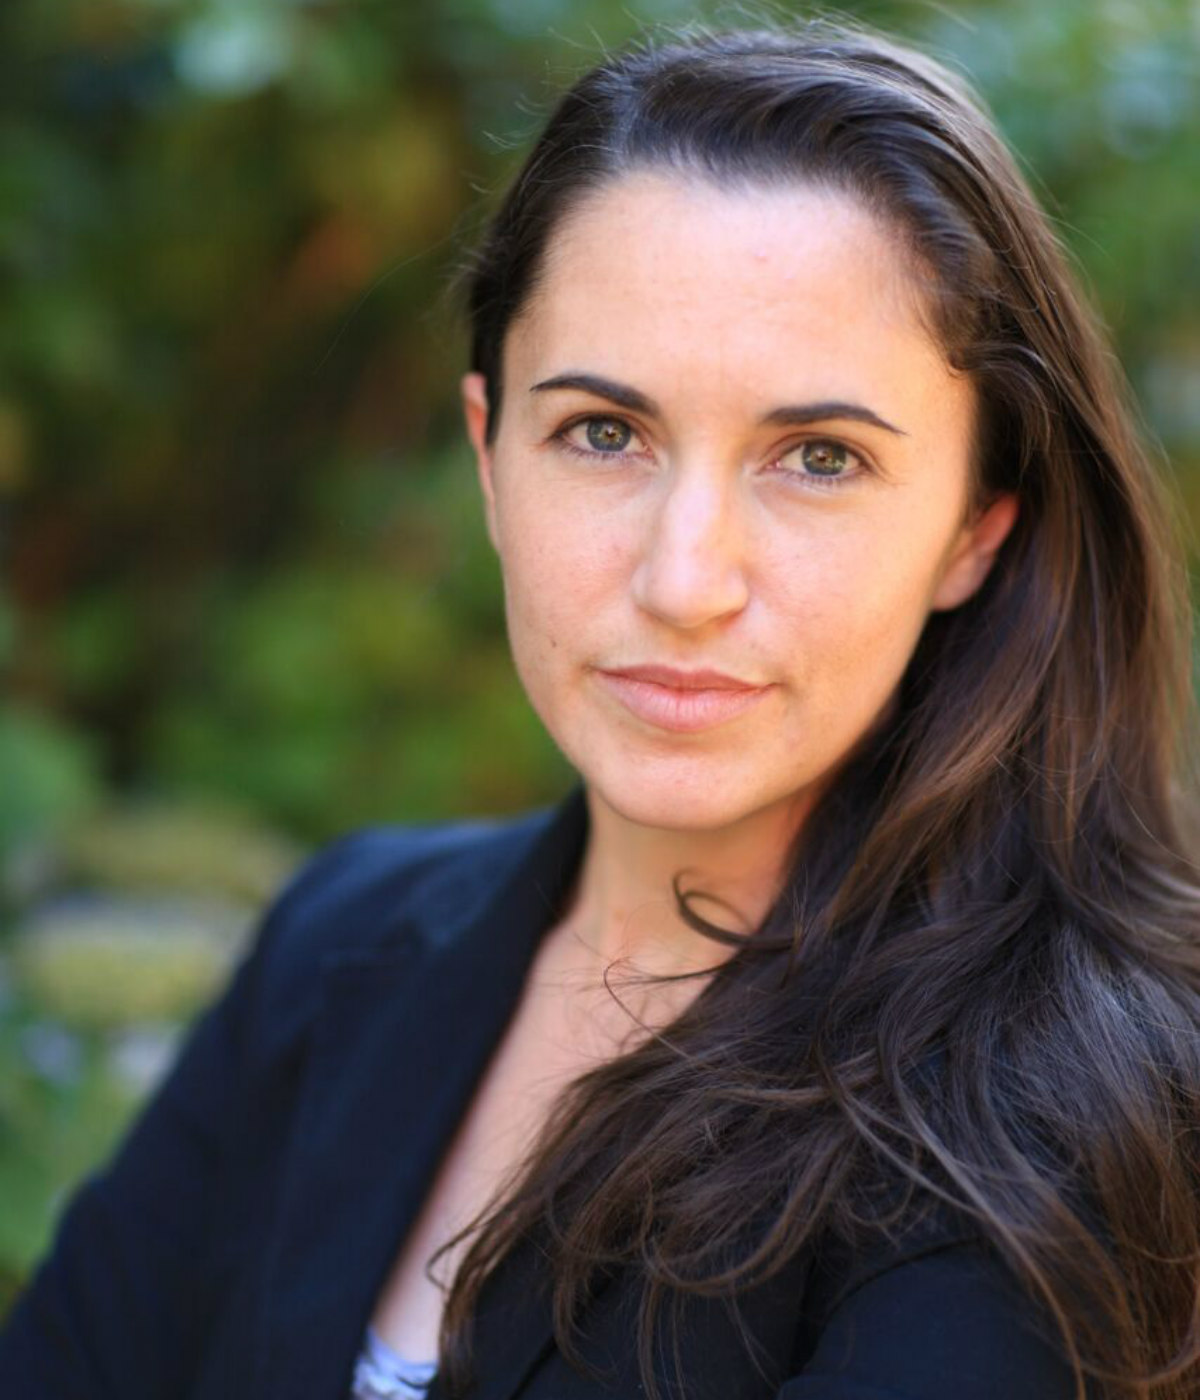 Jenara Nerenberg, a white person with shoulder-length brown hair, stares at the camera